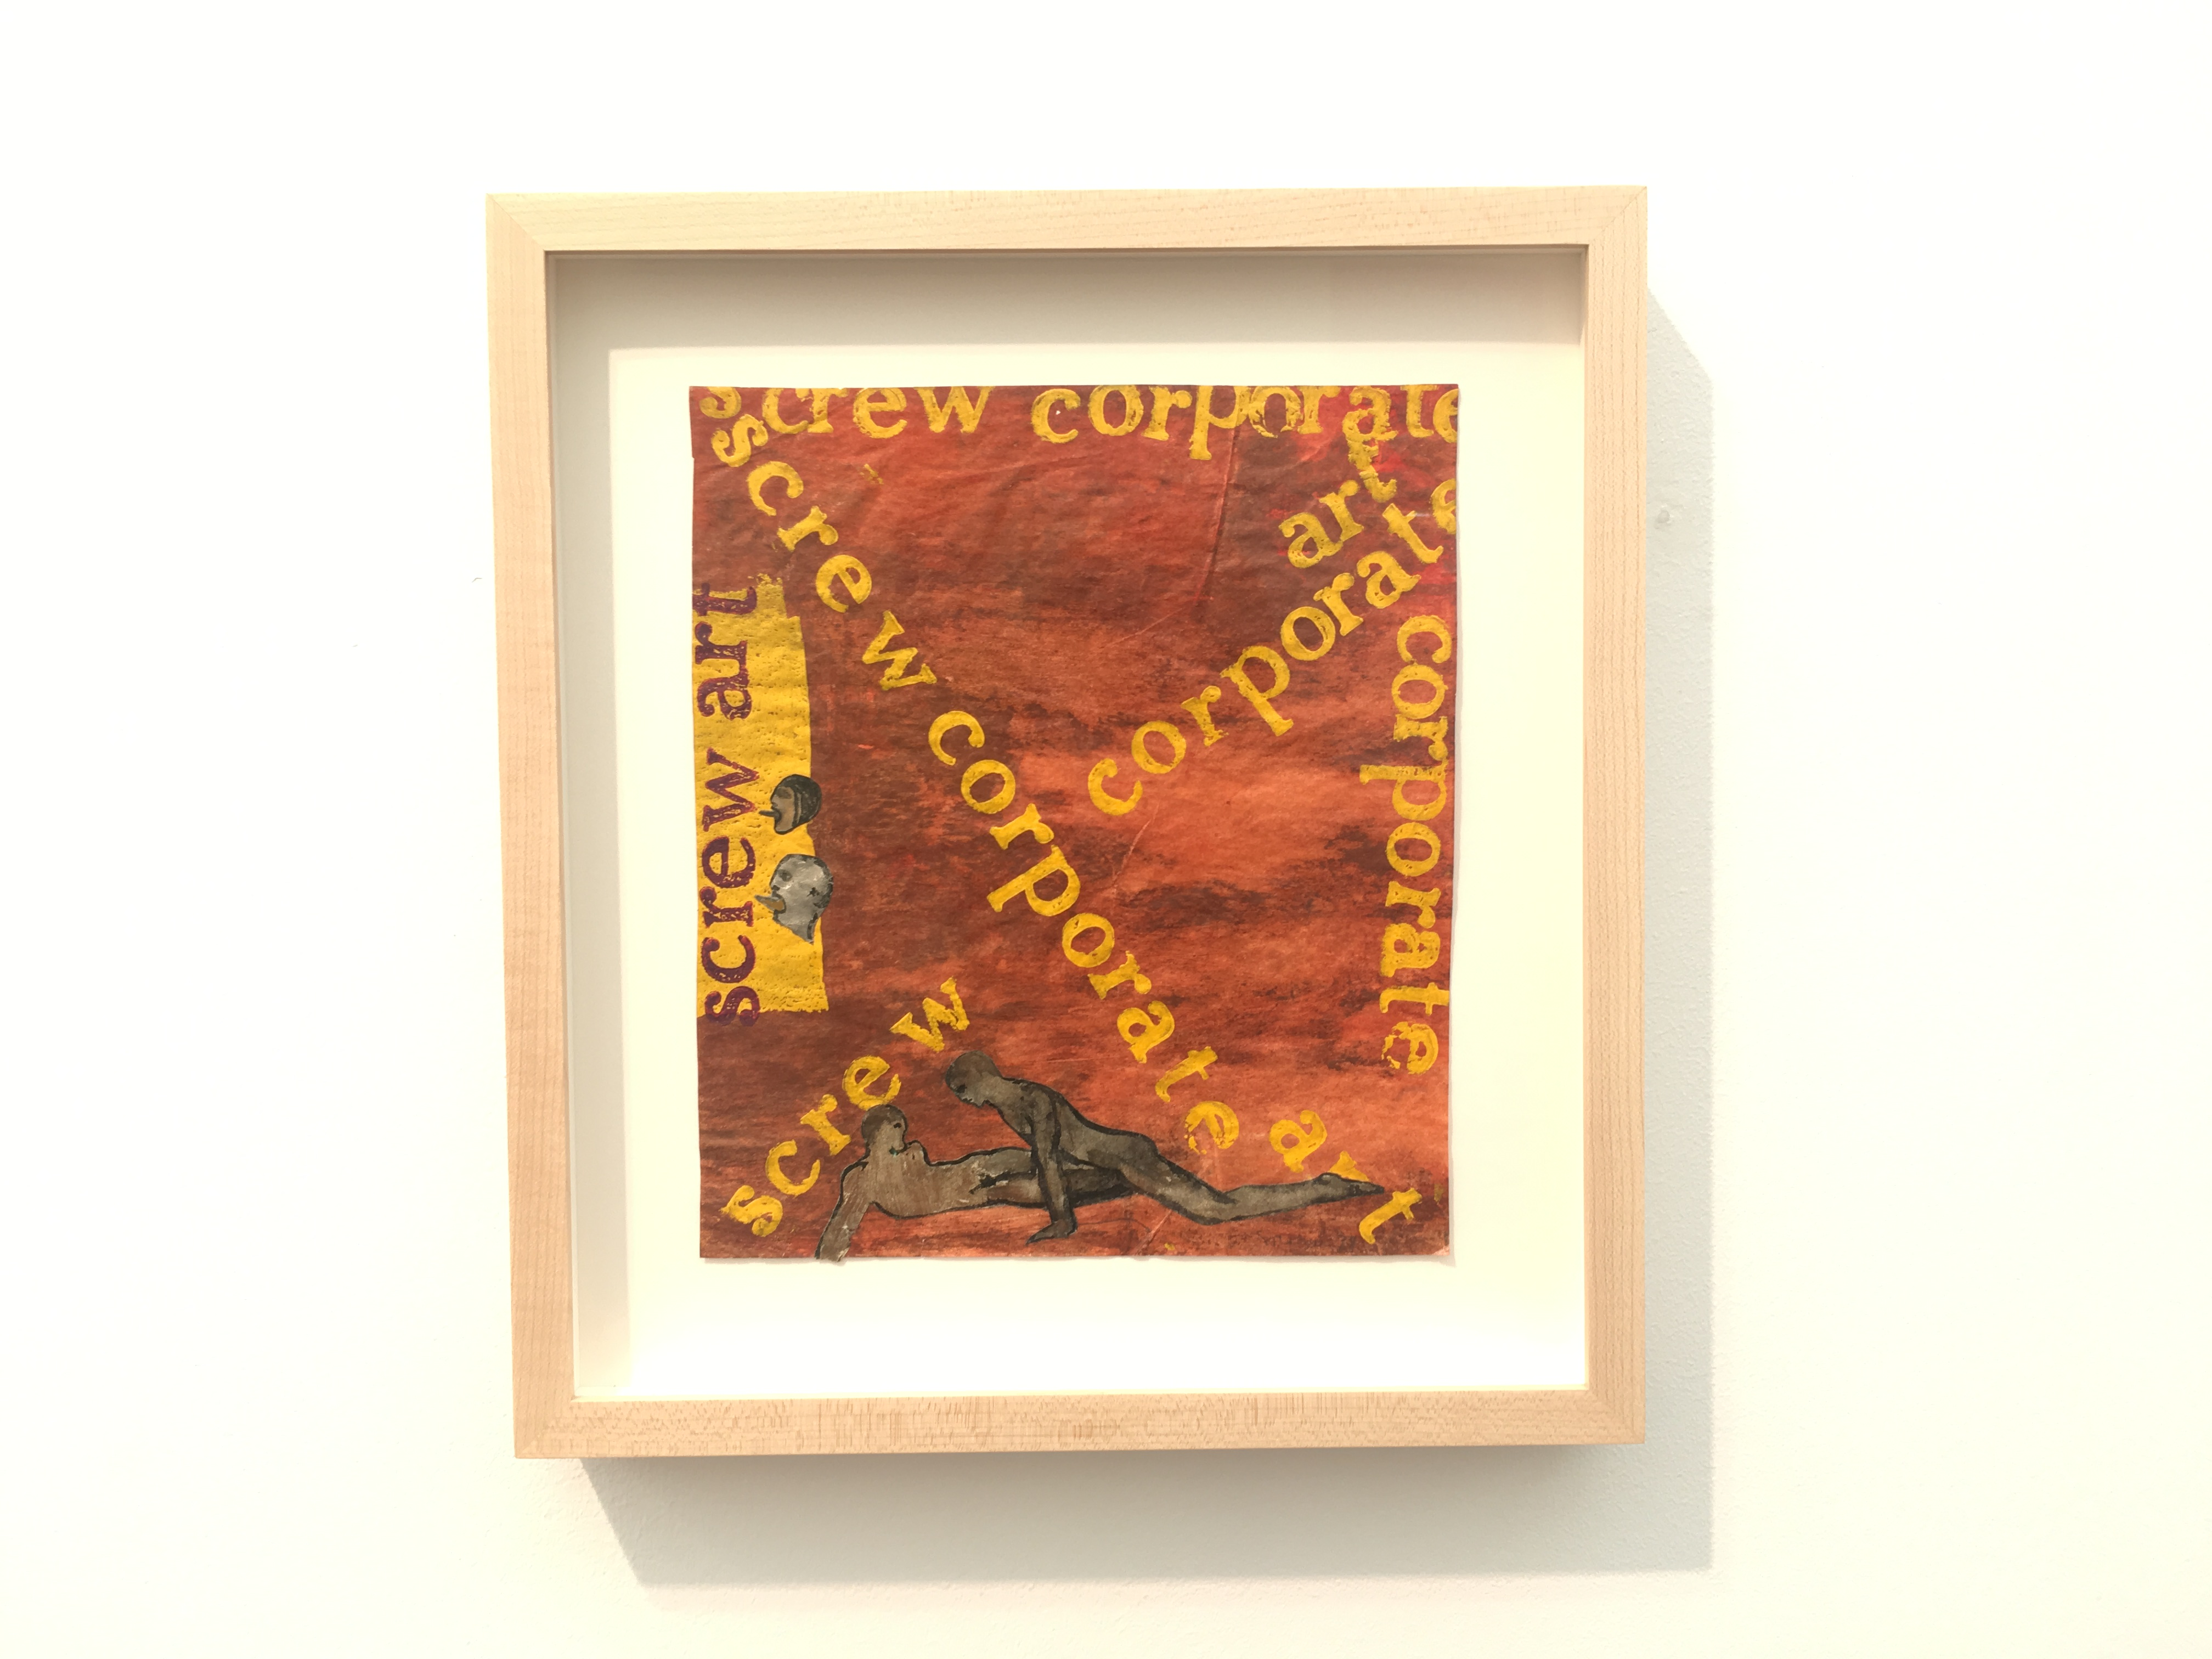 Nancy Spero, Screw Corporate Art, 1974, handprinting and gouache collage on paper, 9.5 x 8.5 inches, Galerie Lelong & Co